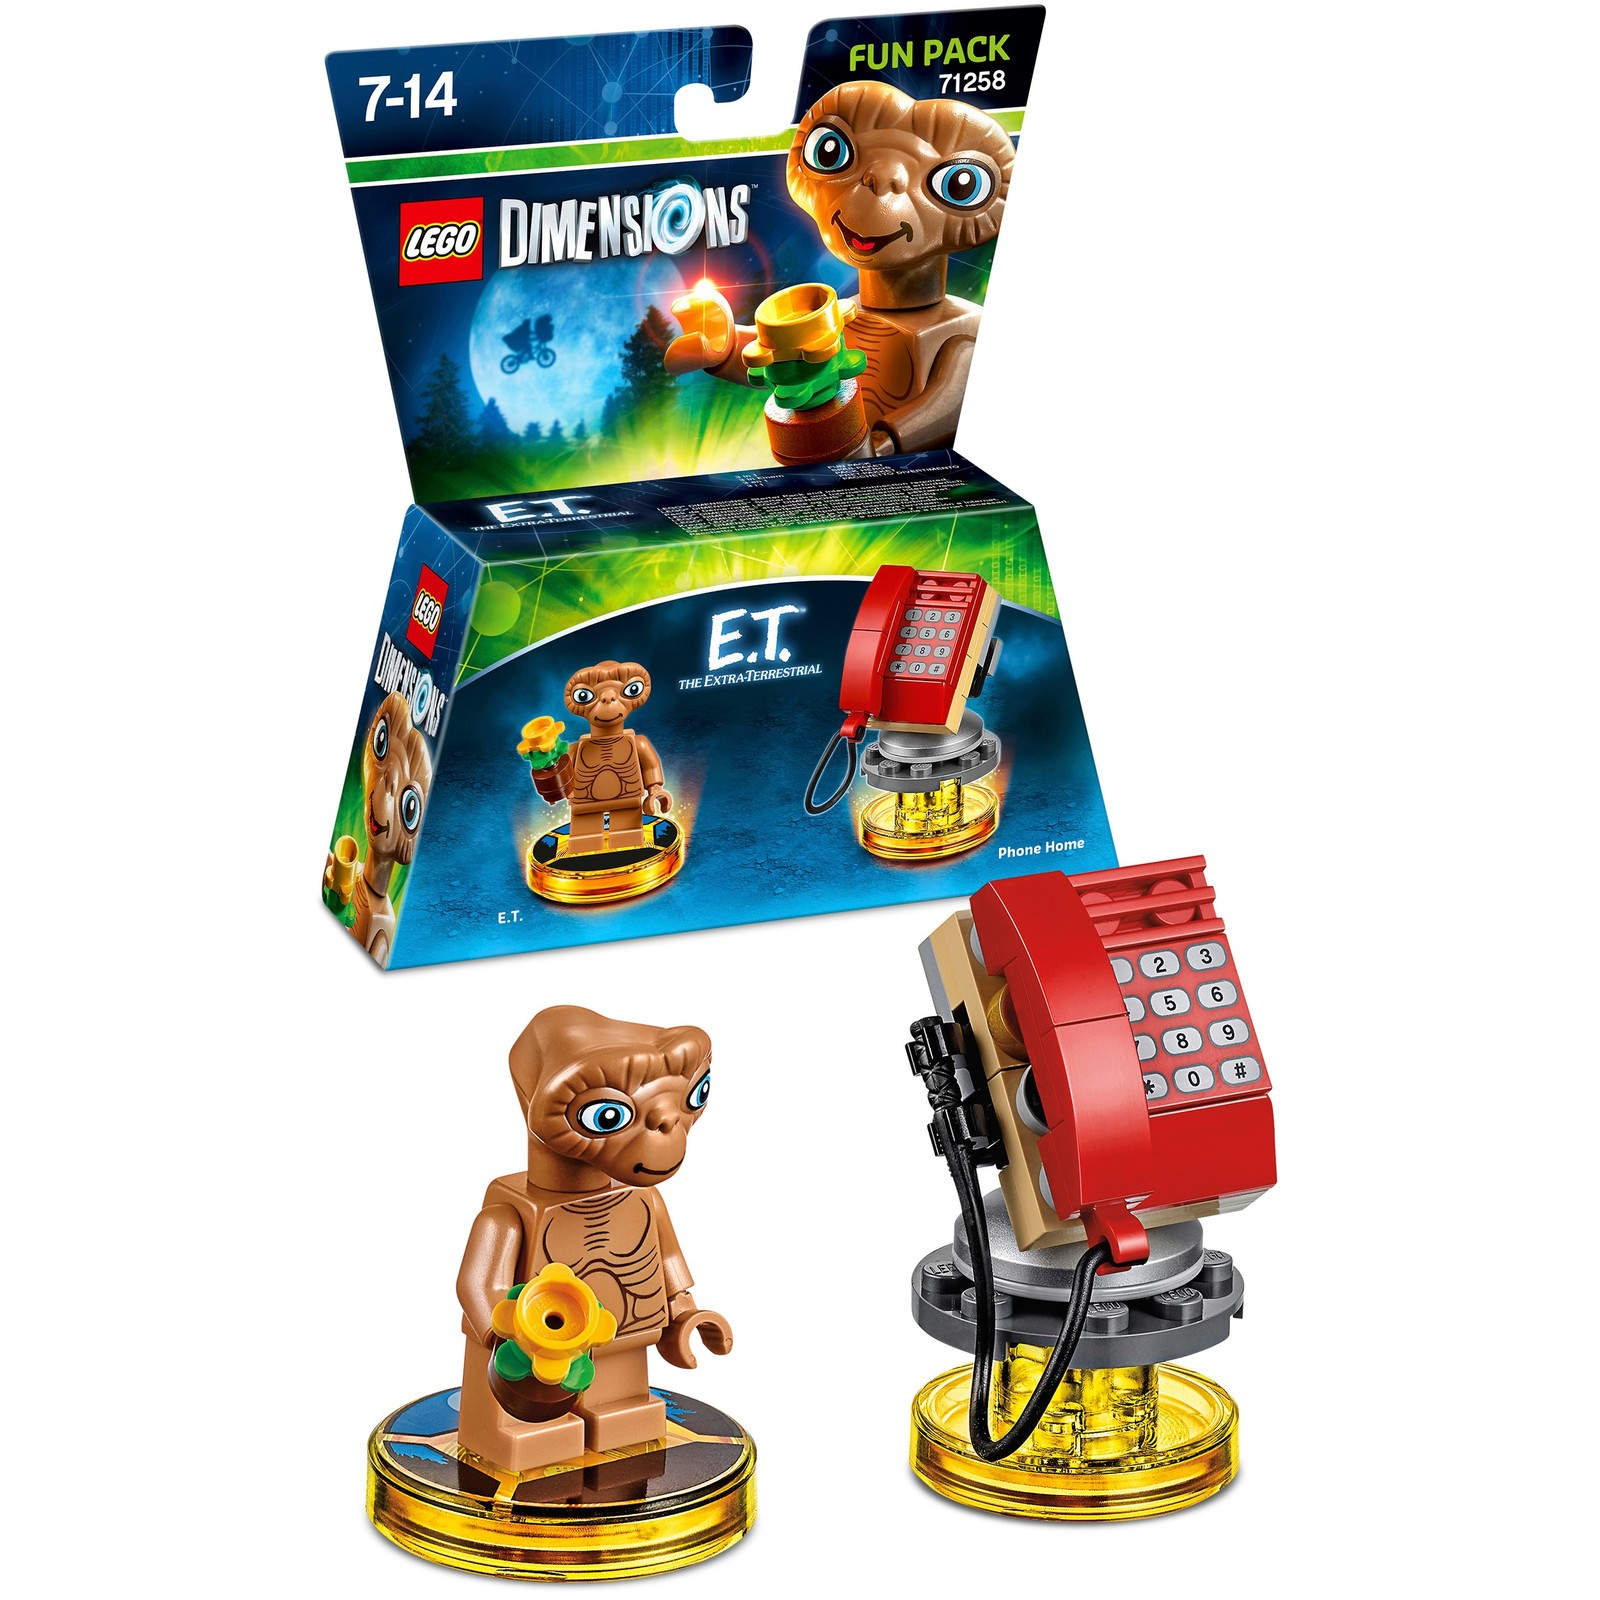 LEGO Dimensions Fun Pack - E.T. (All Formats) for  image